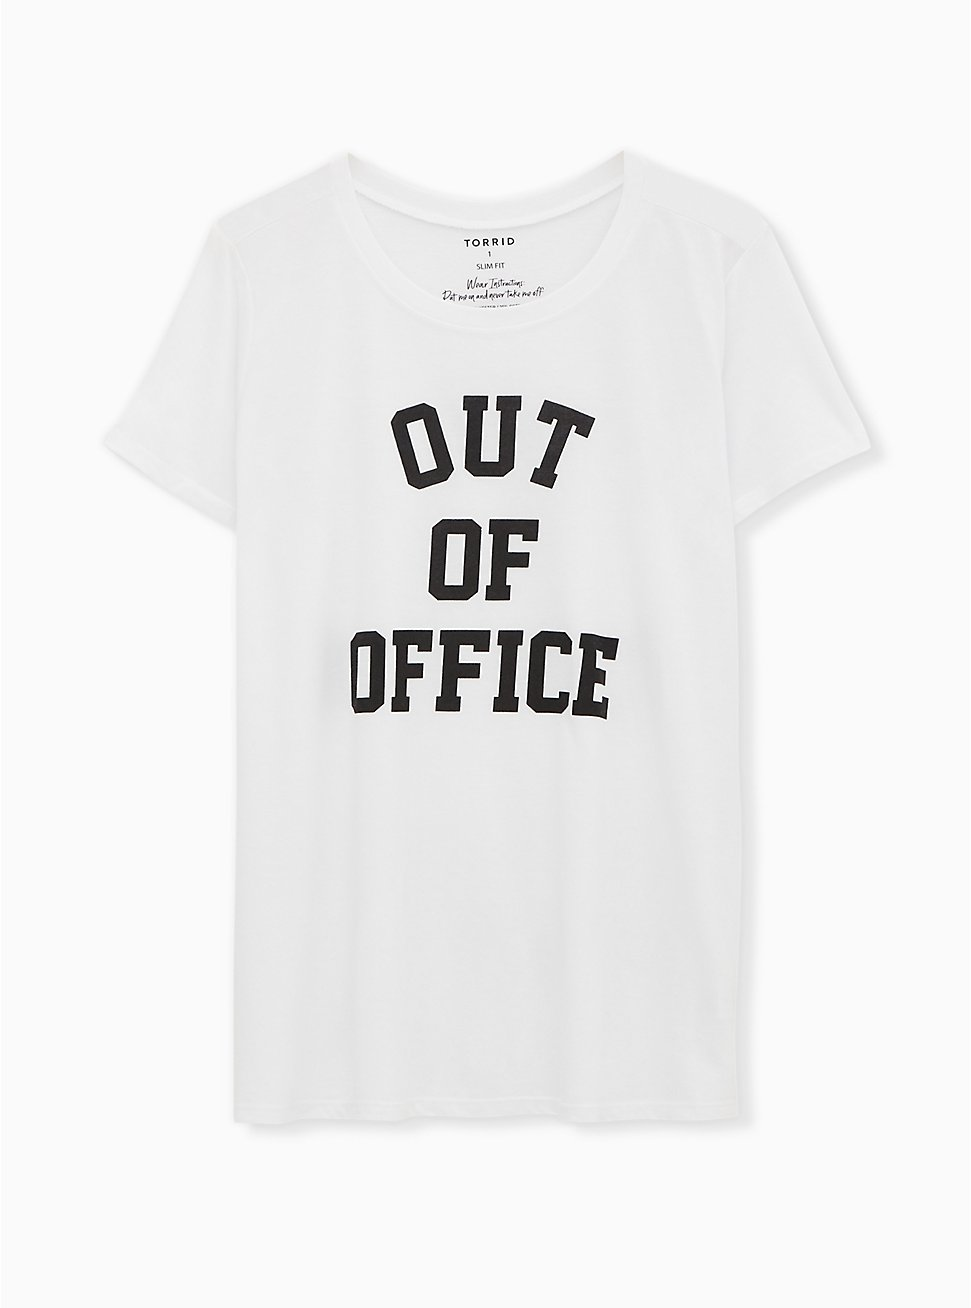 Out Of Office Slim Fit Crew Tee - White, BRIGHT WHITE, hi-res